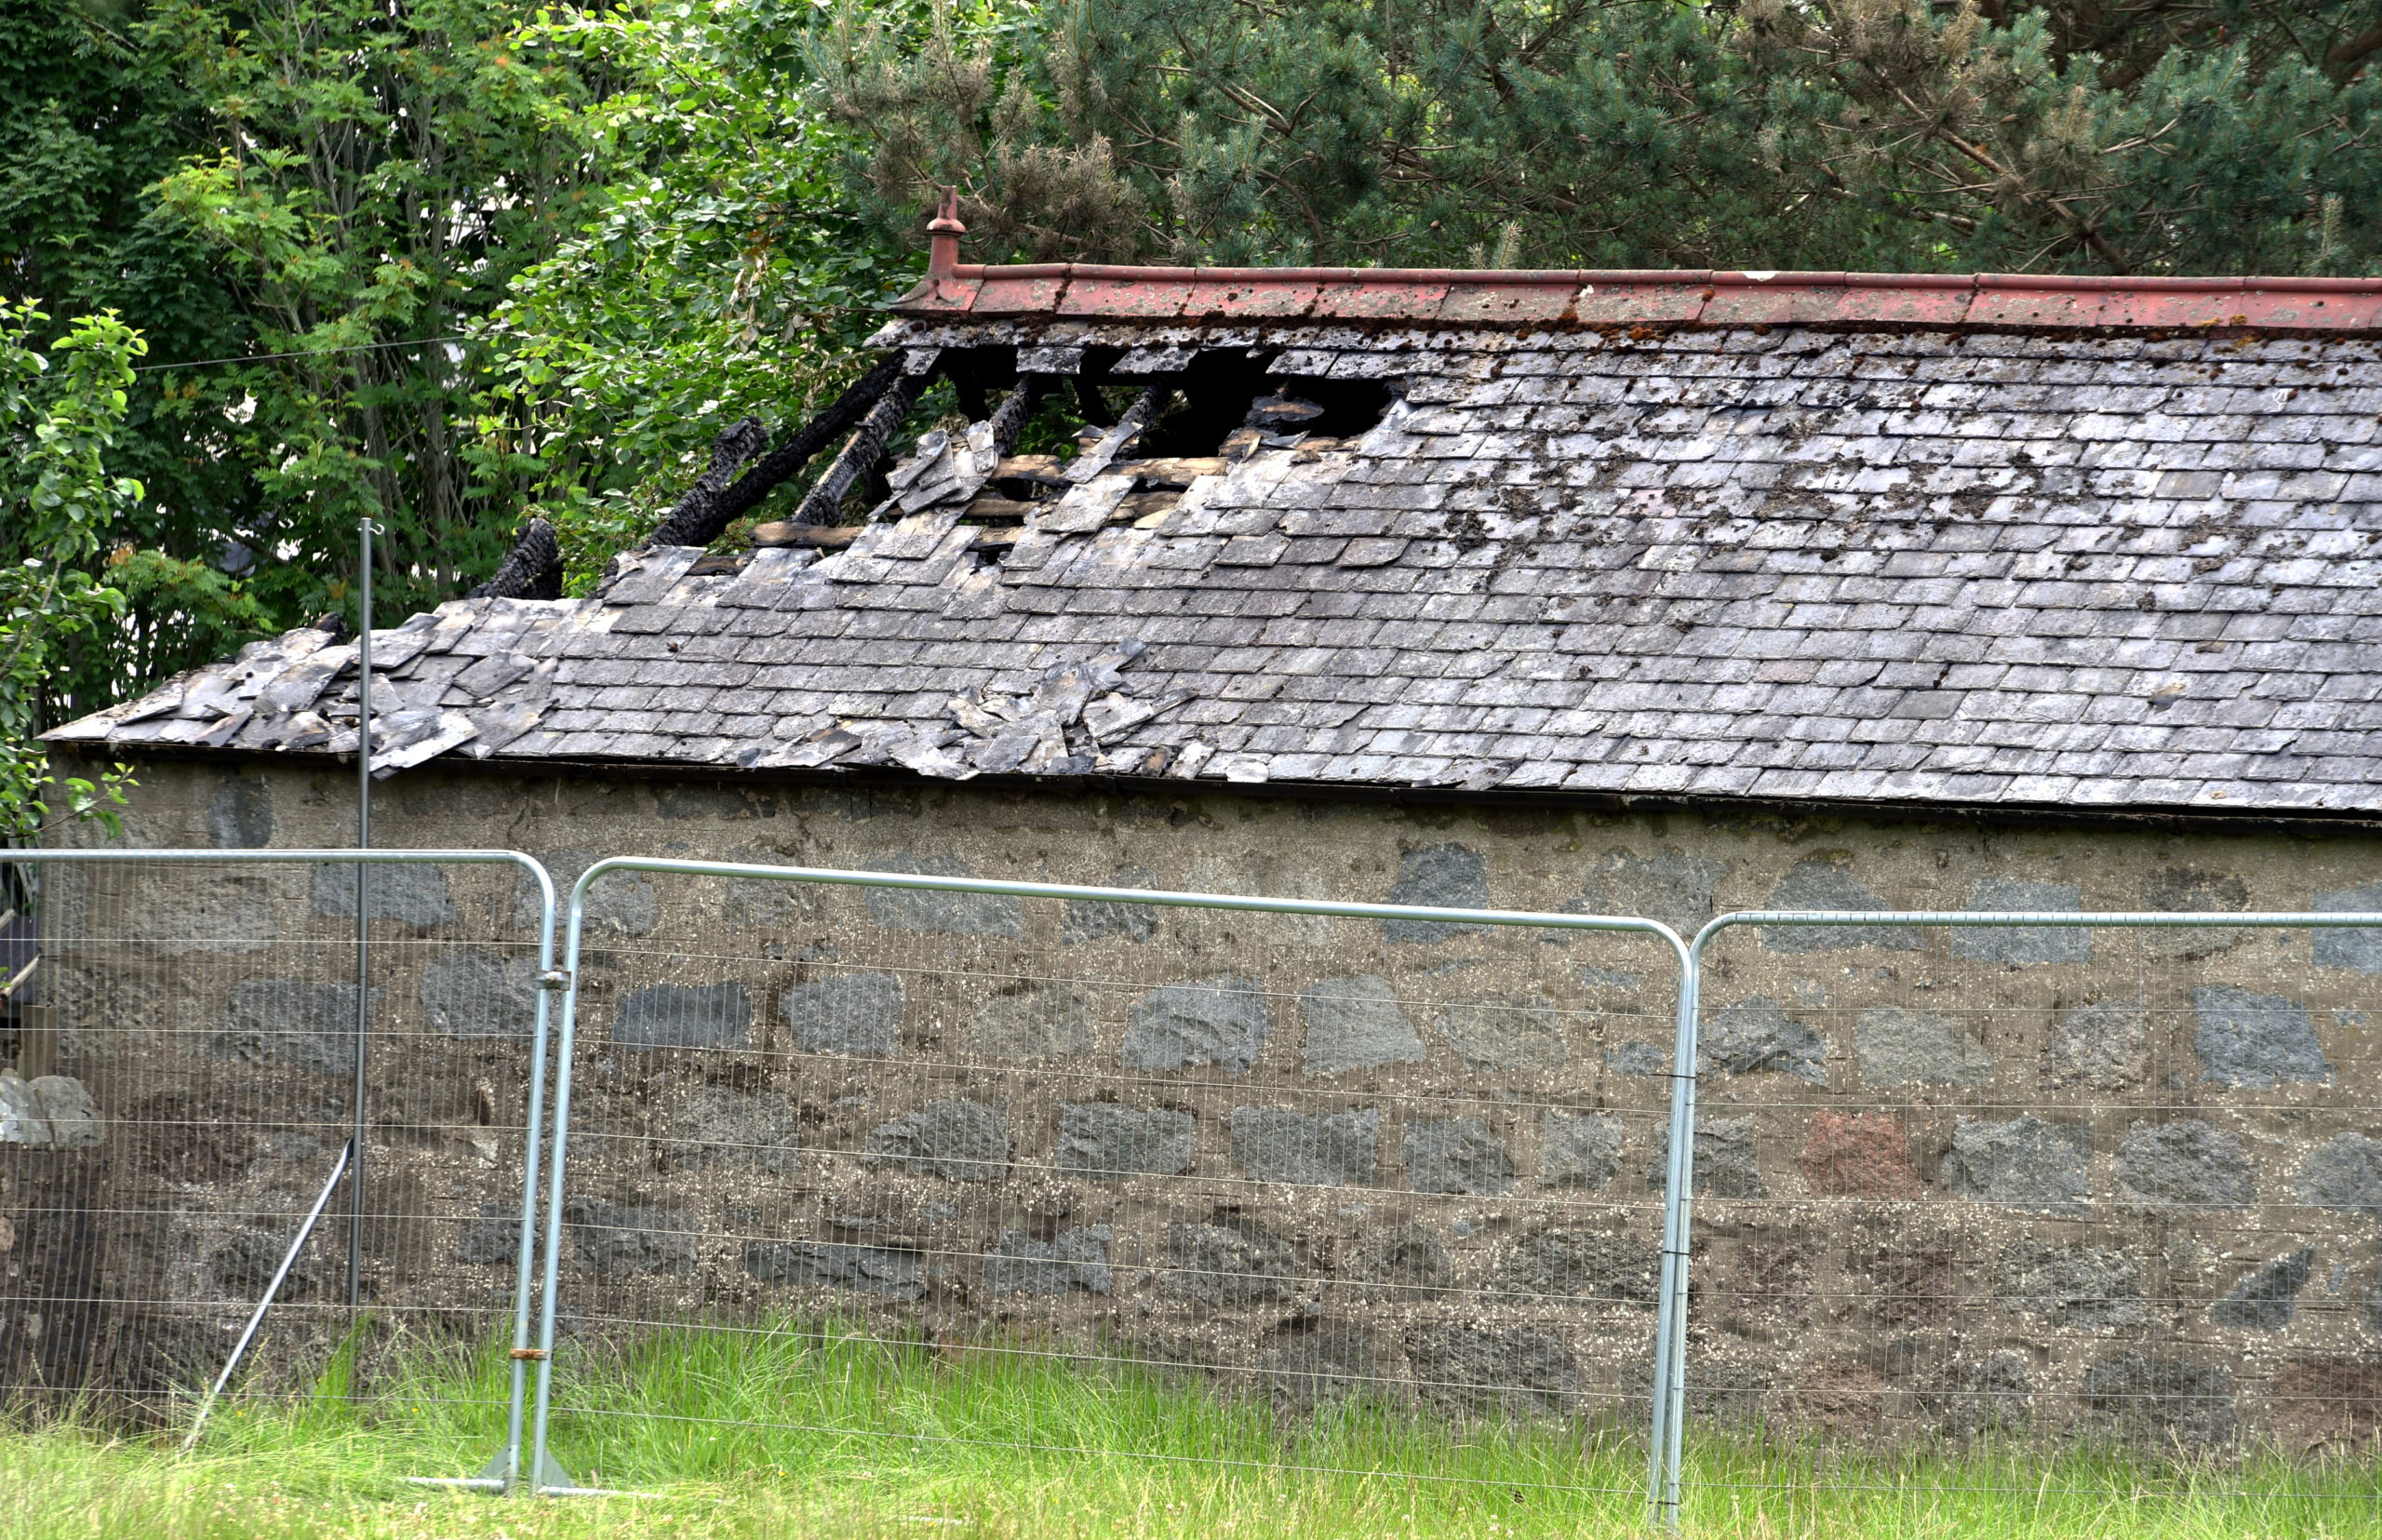 The aftermath of a fire in a playground shelter at Monymusk School. Picture by Chris Sumner